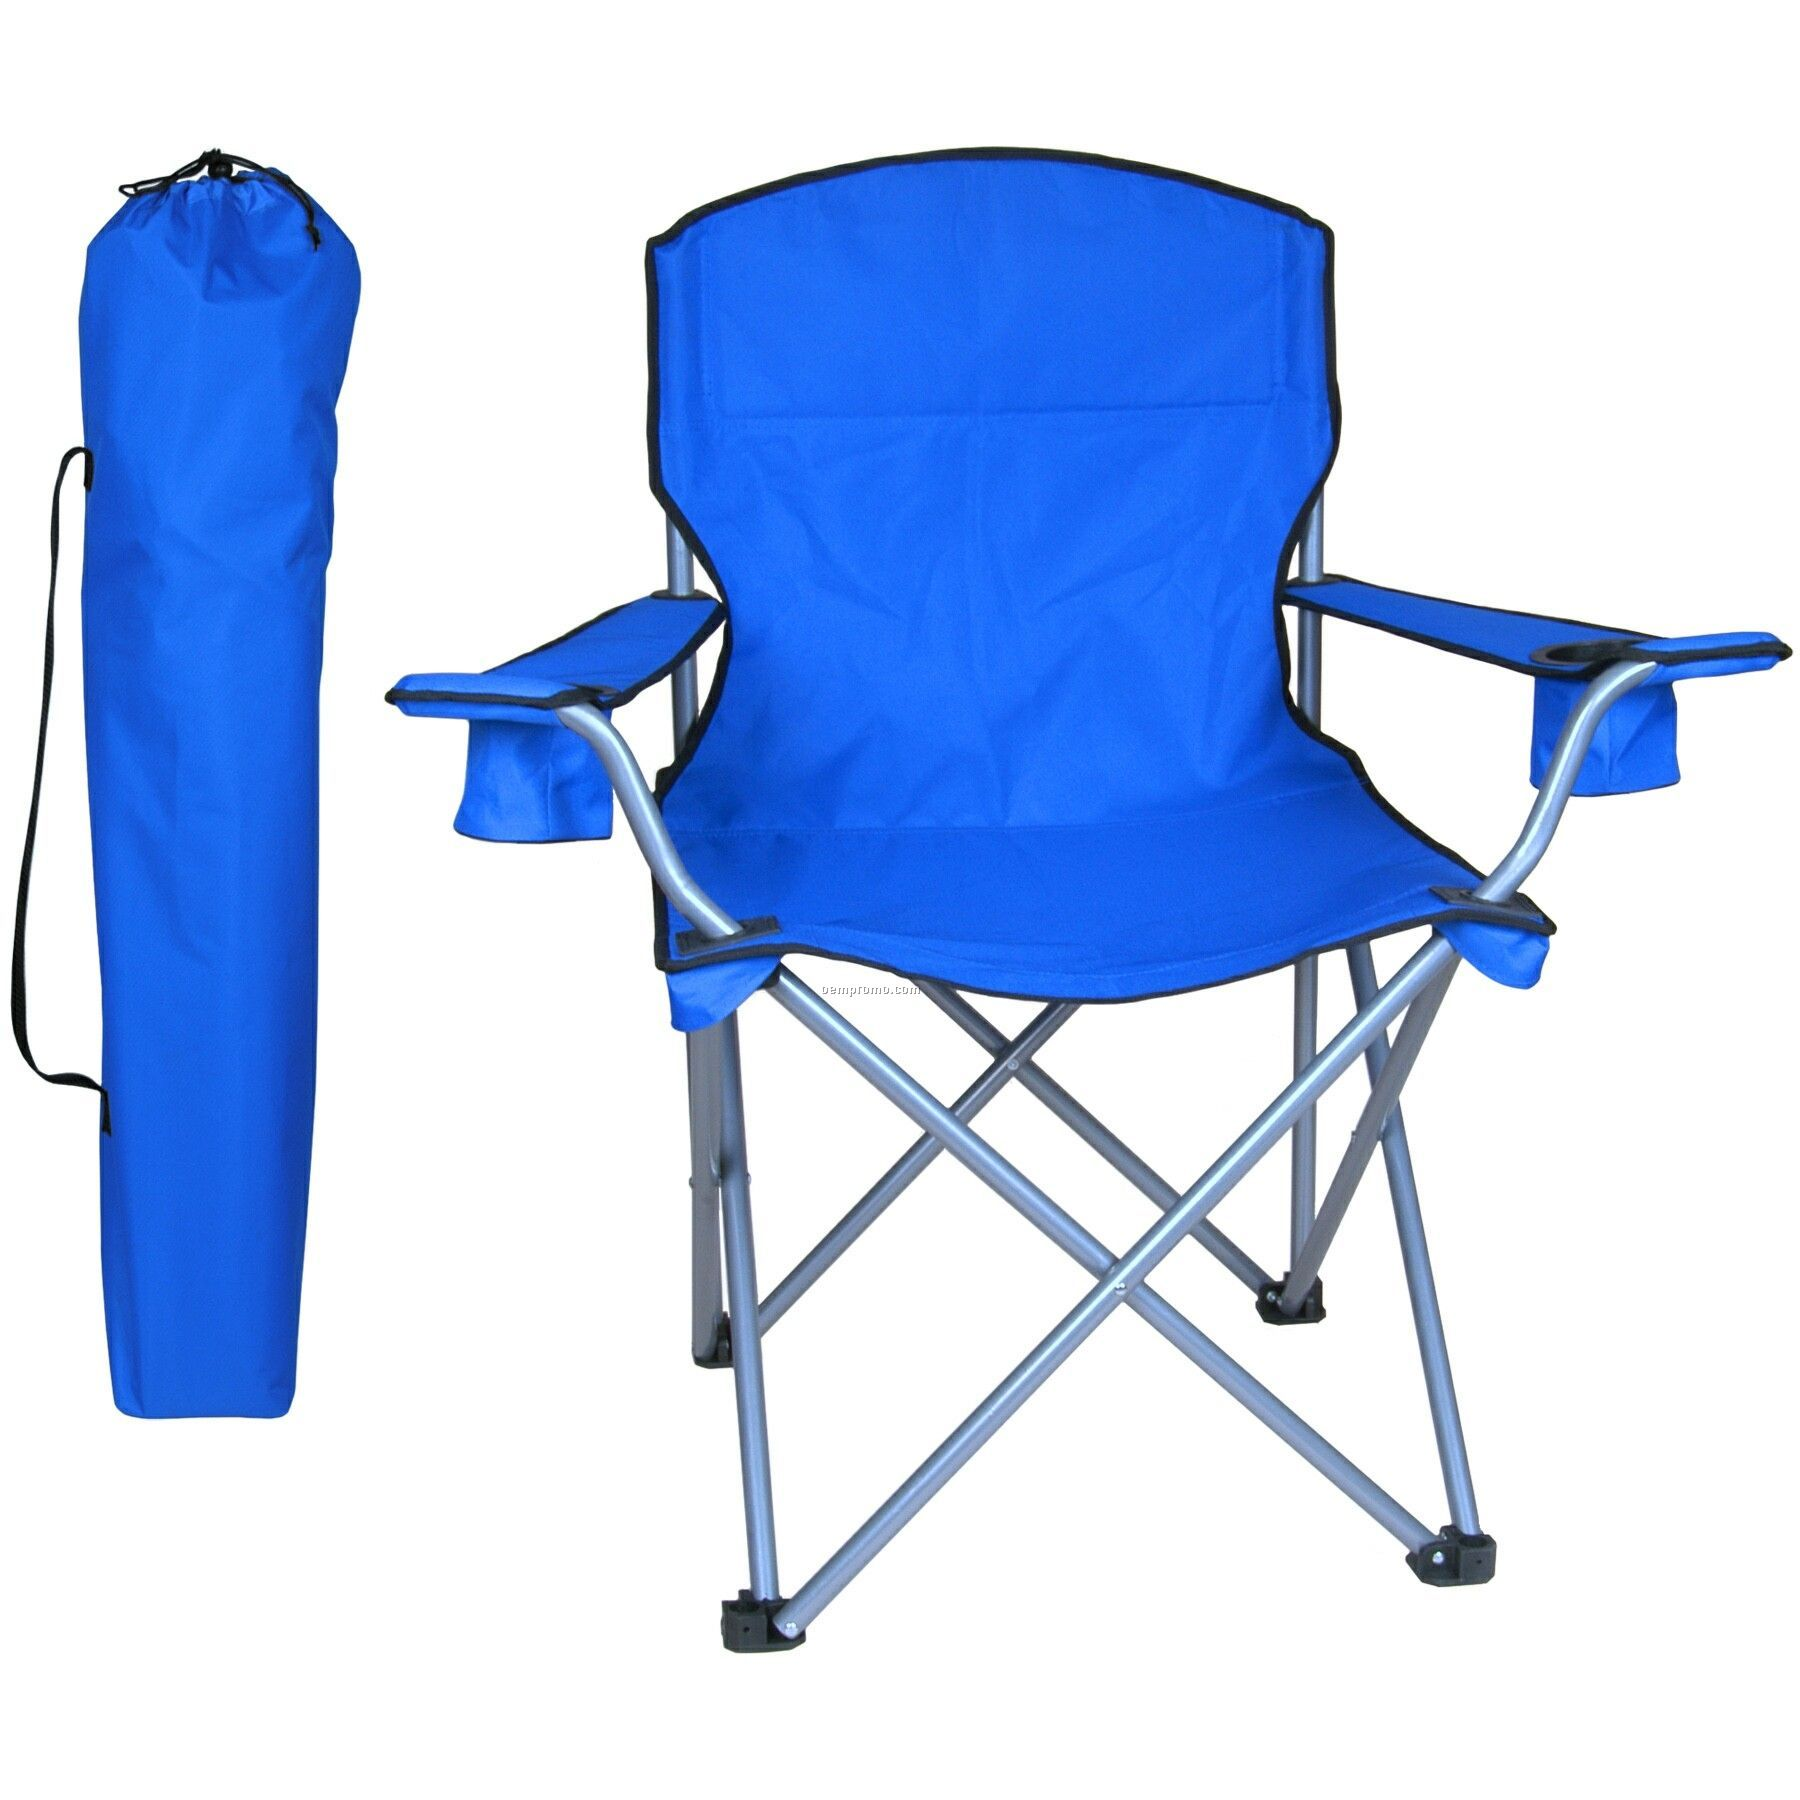 Large Folding Chair W/Arm Rests, 2 Cup Holders And Carry Bag- 330 Lb Rating